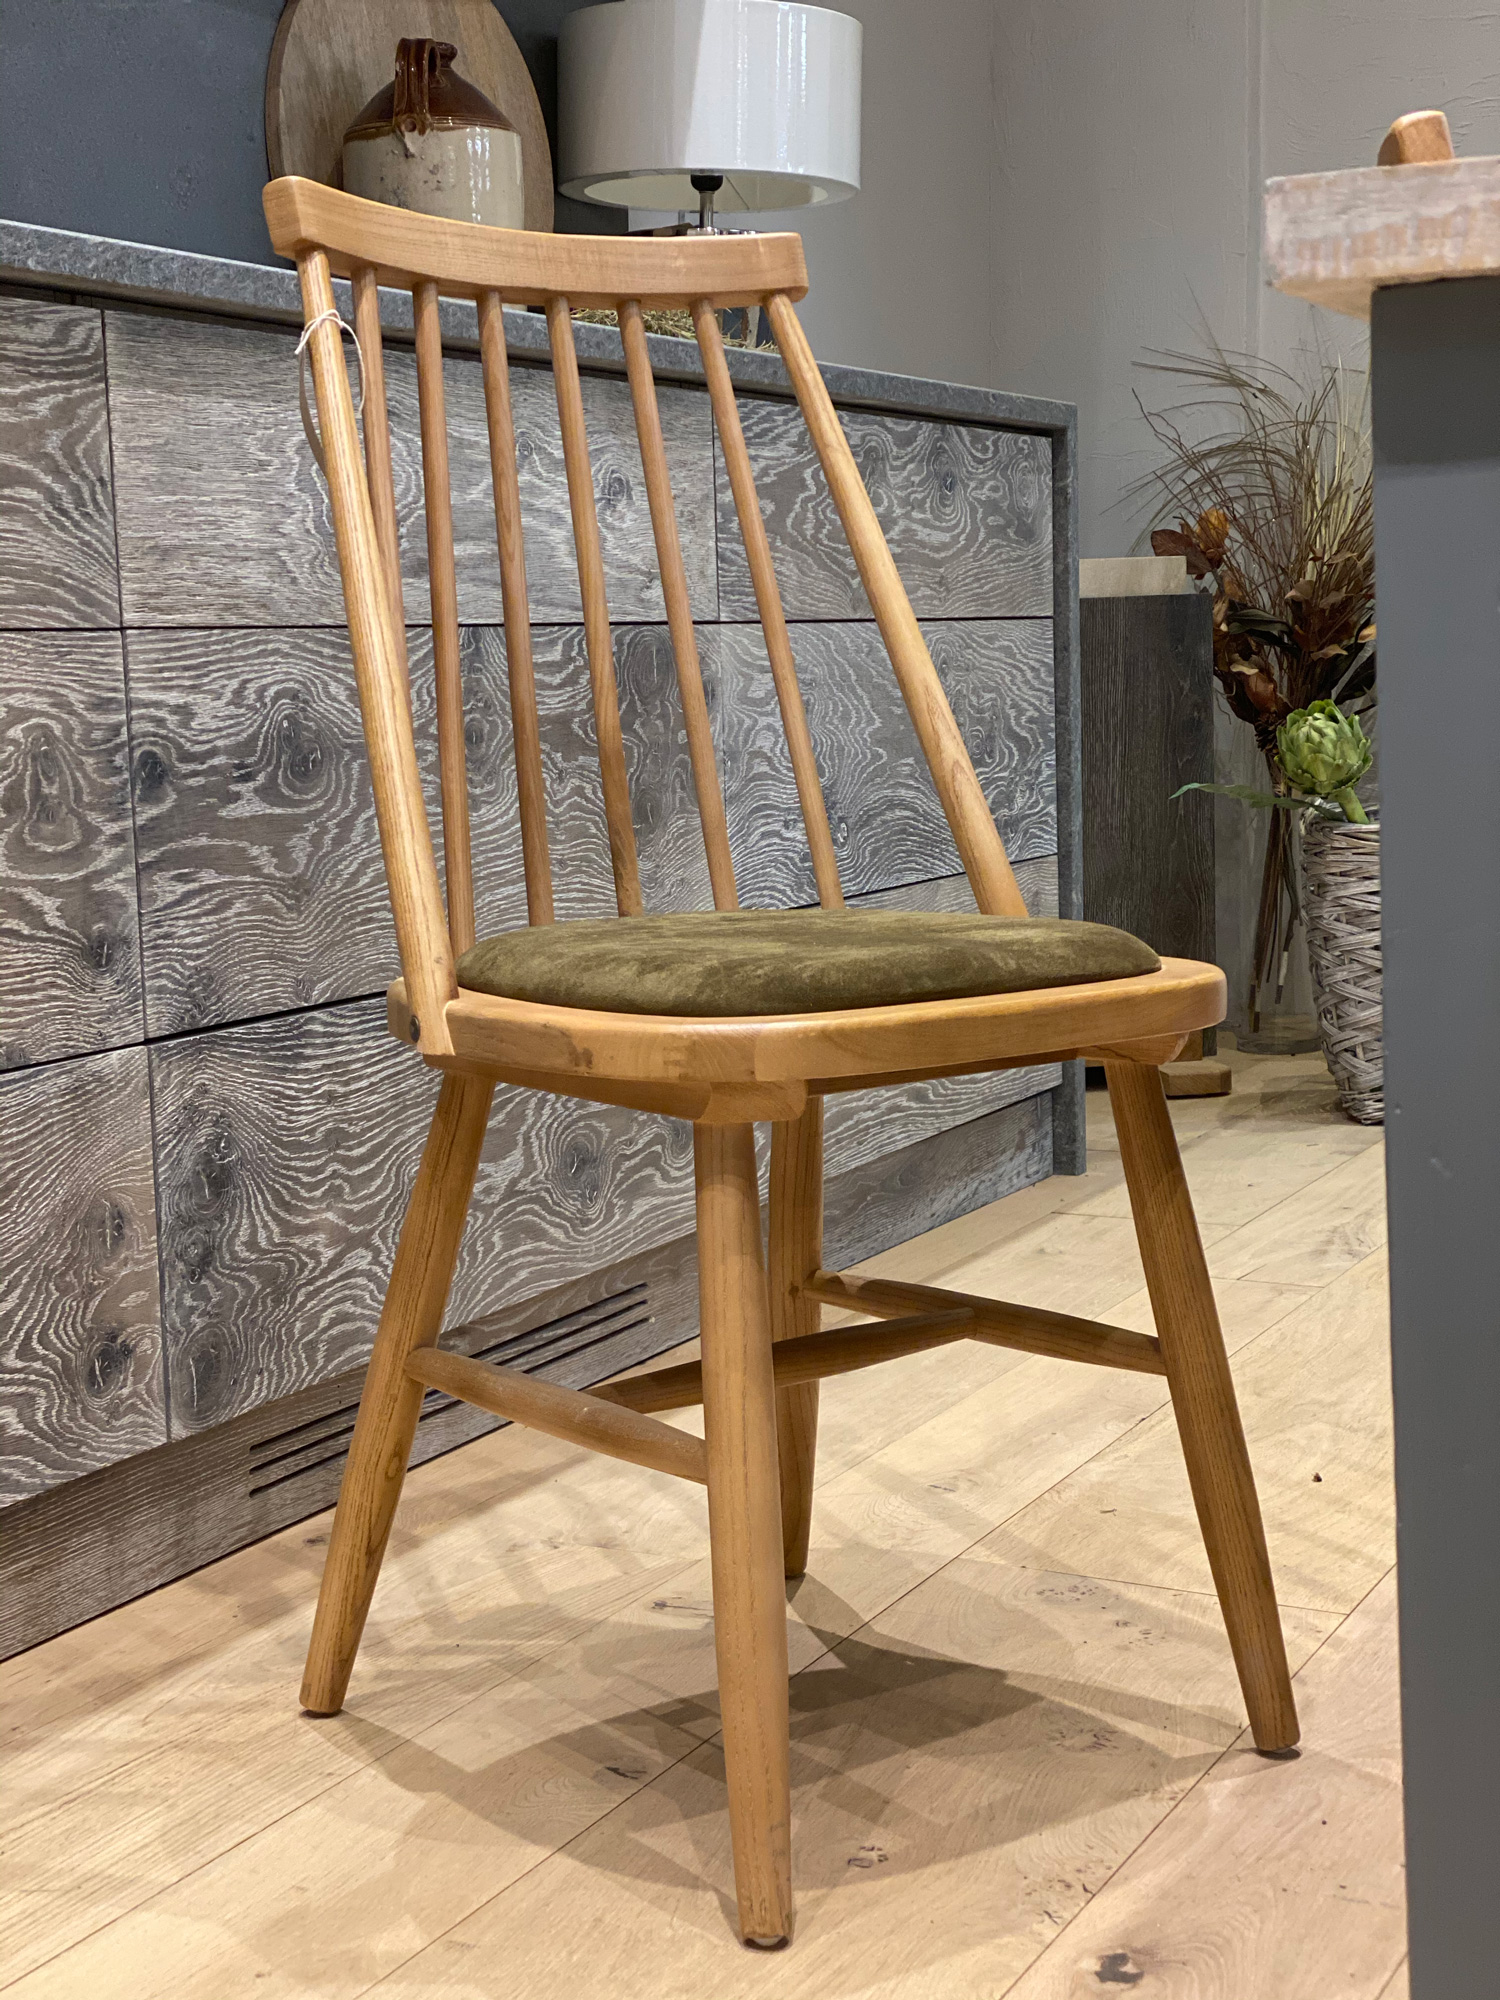 Oak chair with green felt seat